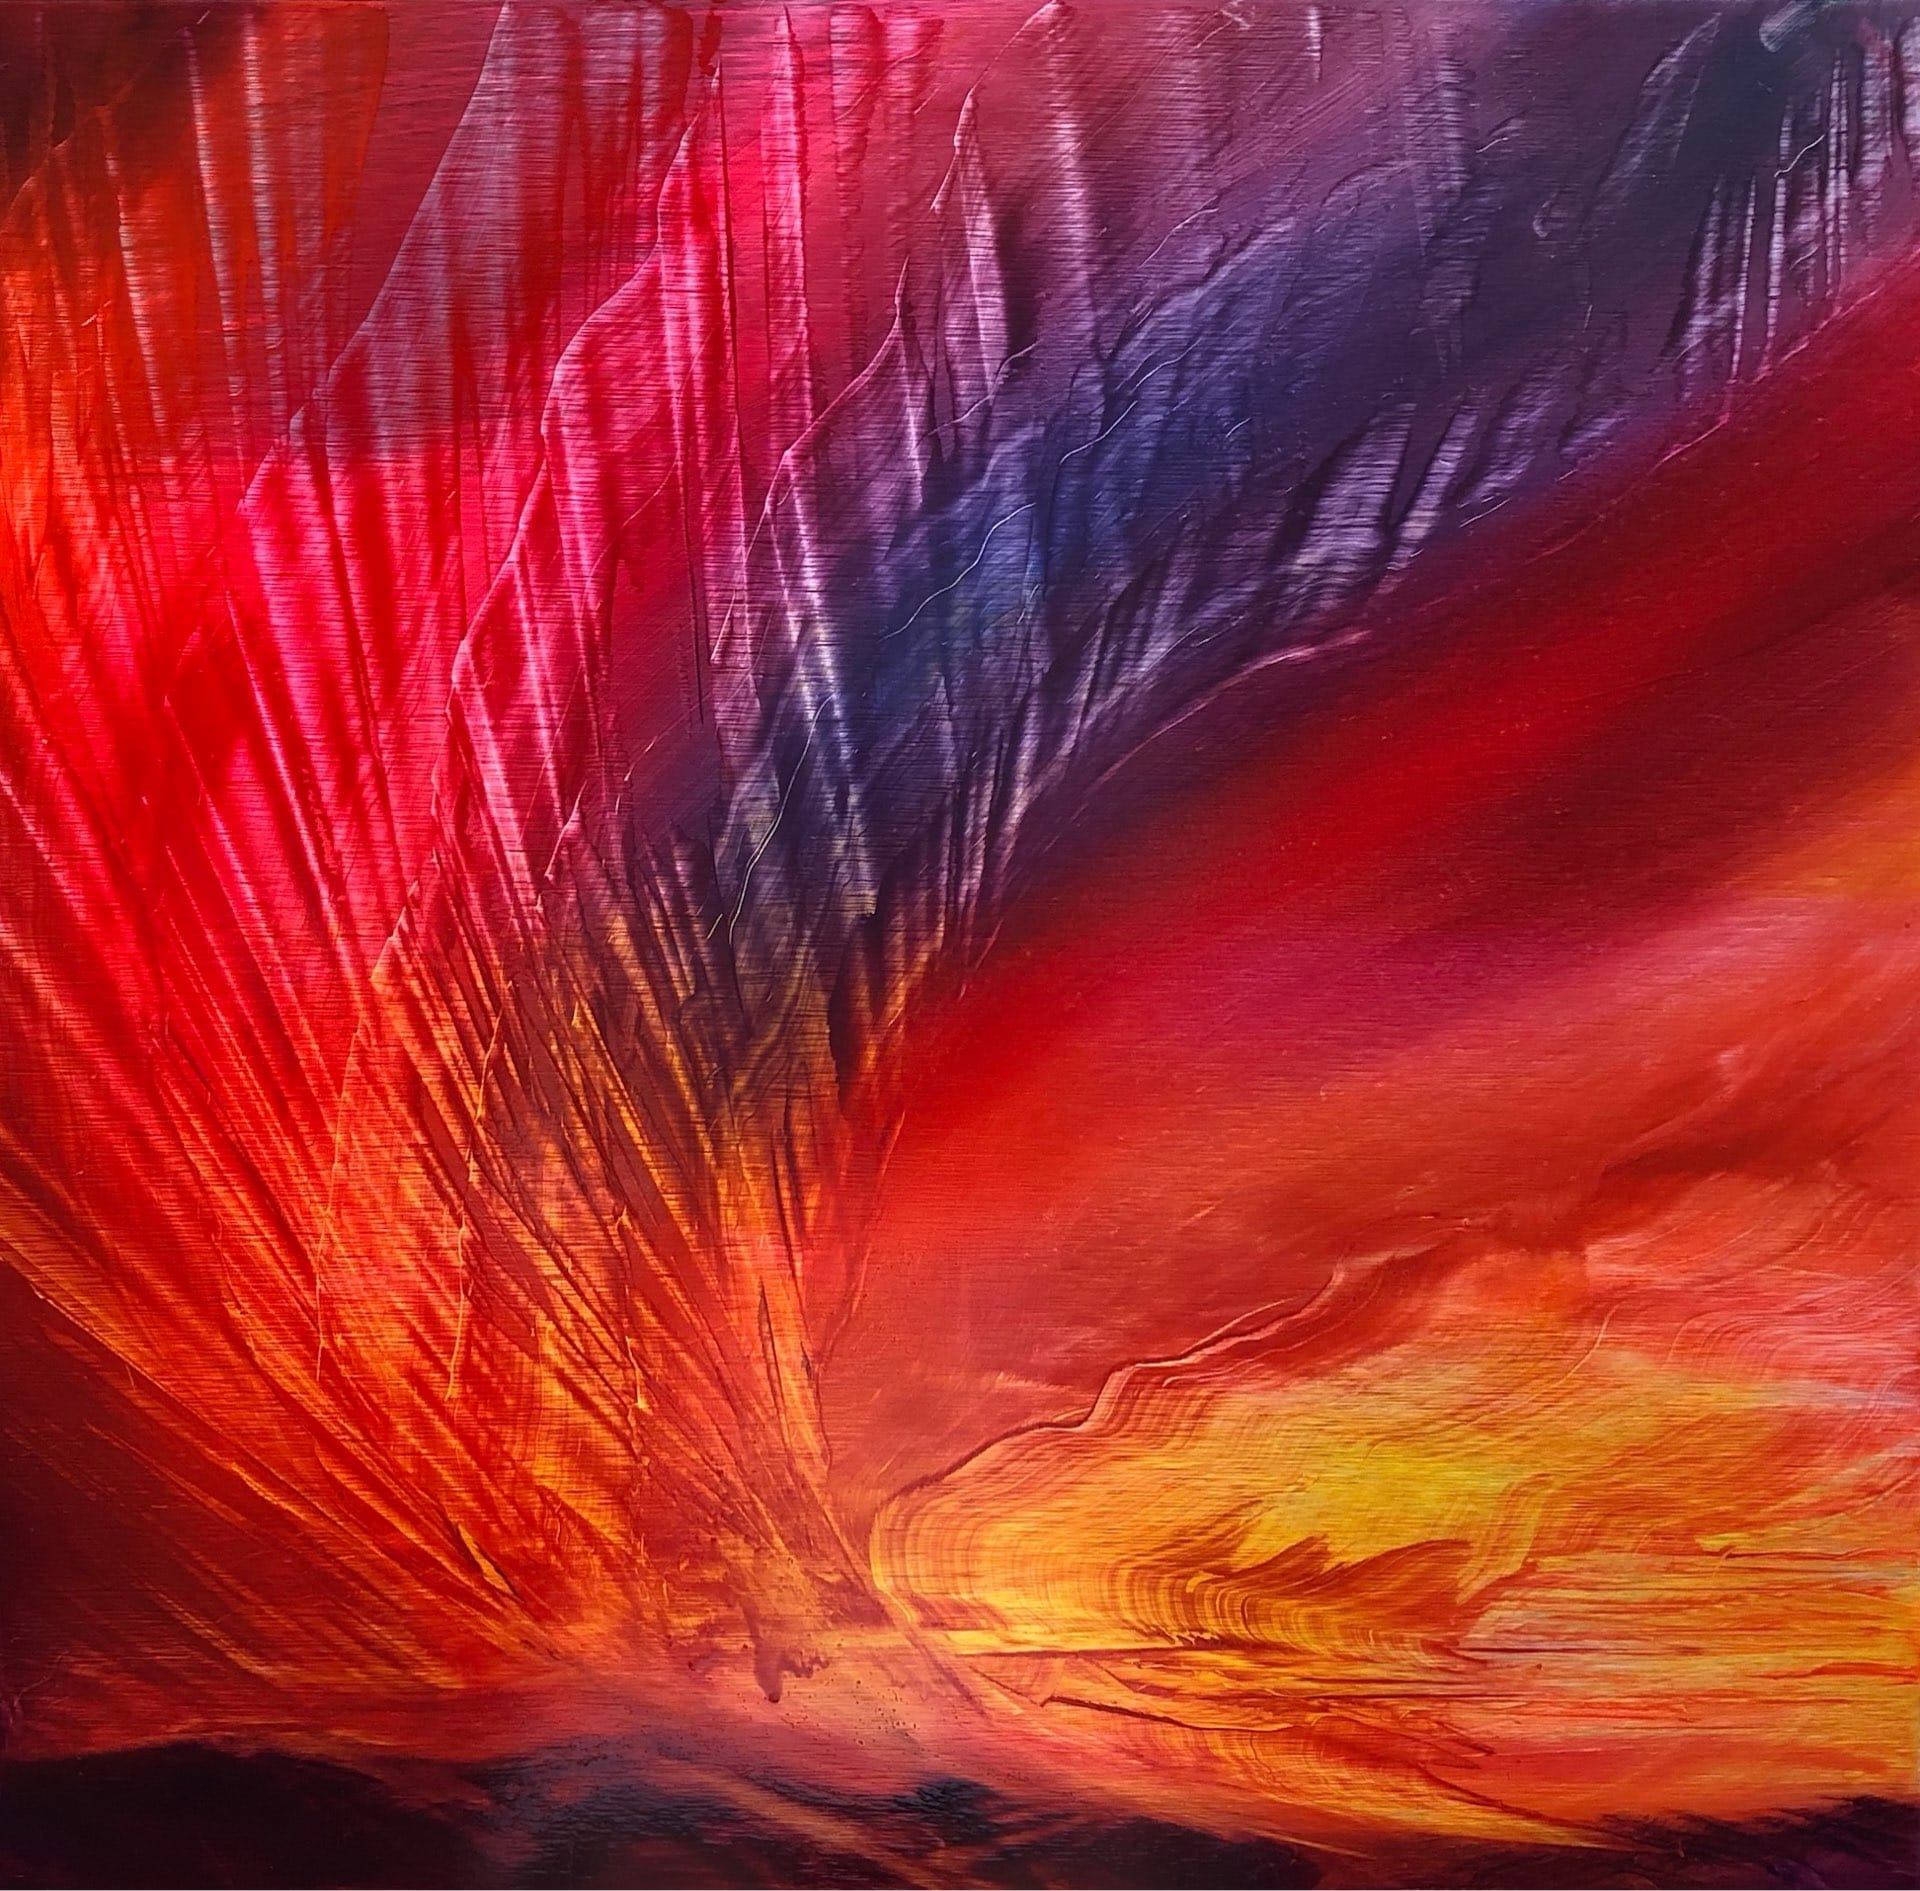 Amazon Burning, Contemporary oil painting on metal of fires in the Amazon, Fine Art by Cynthia McLoughlin